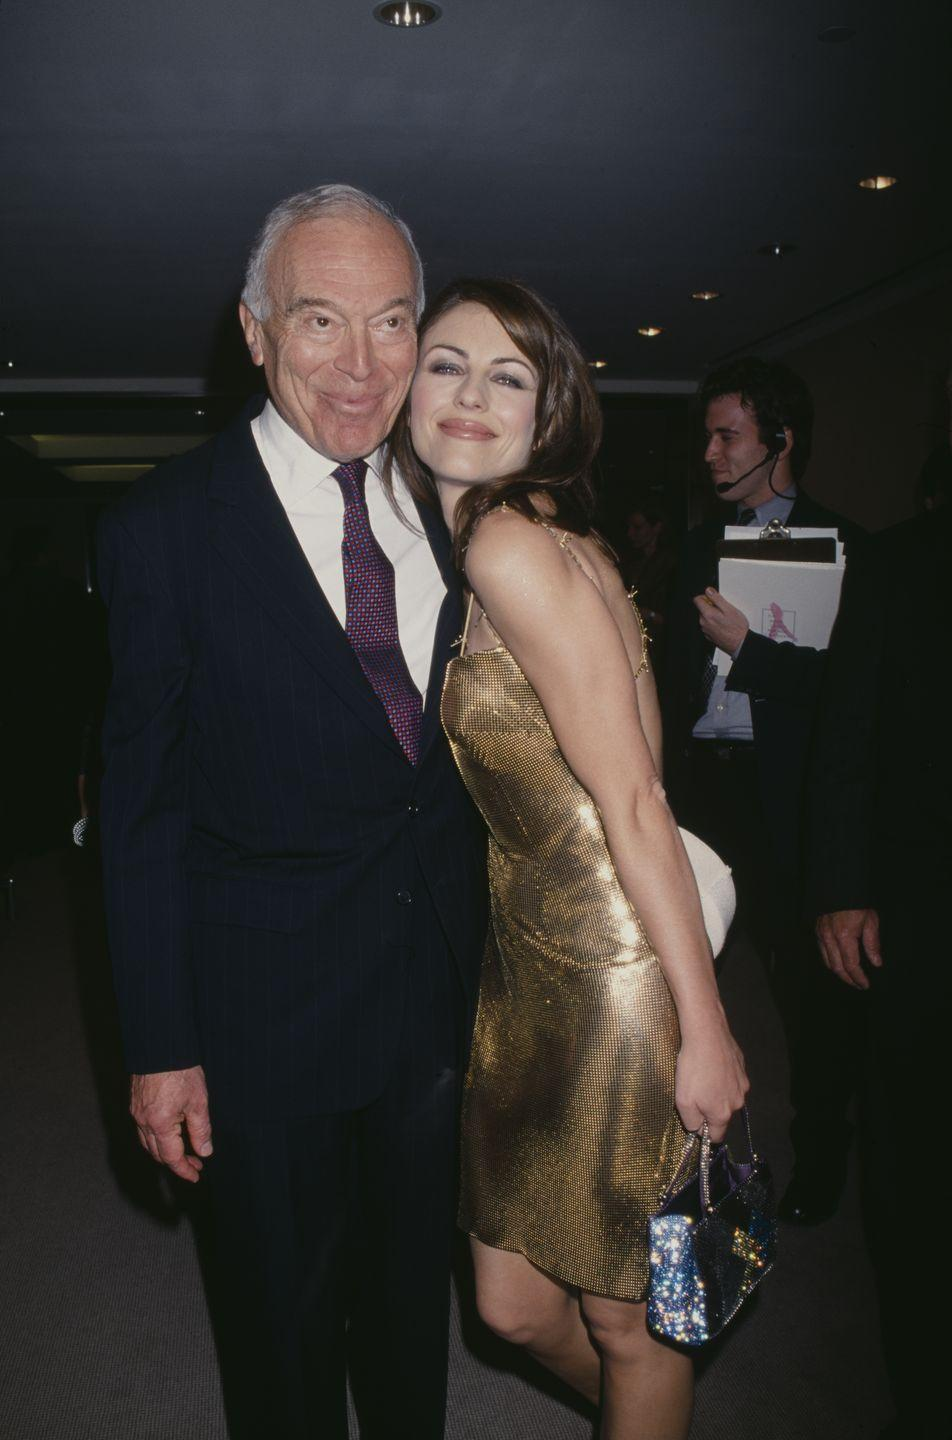 <p>Elizabeth posing with the Chief Executive Officer of Estée Lauder at the time, Leonard Lauder, at an event for the company at Christie's.</p>